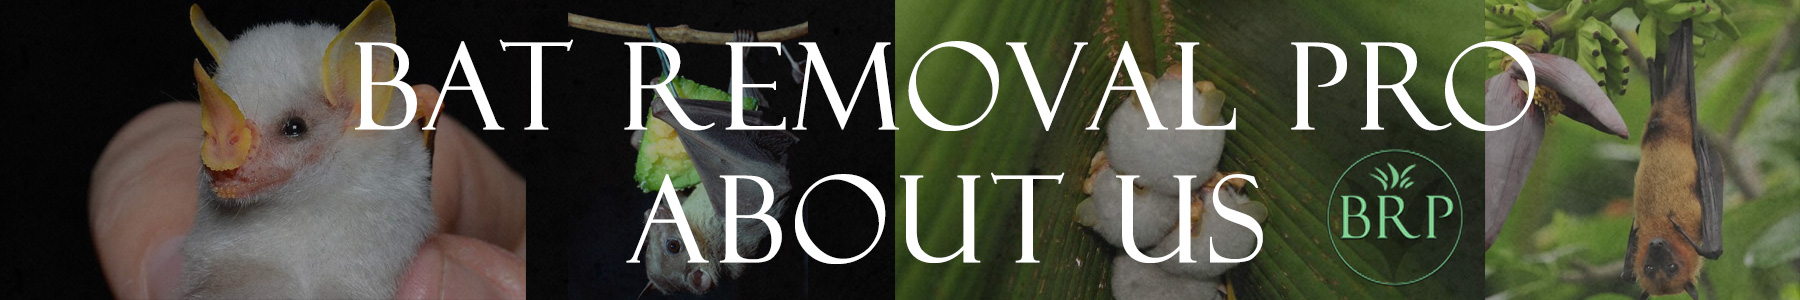 Bat Removal Pro - Directory of Bat Removal Professionals - About Us Page